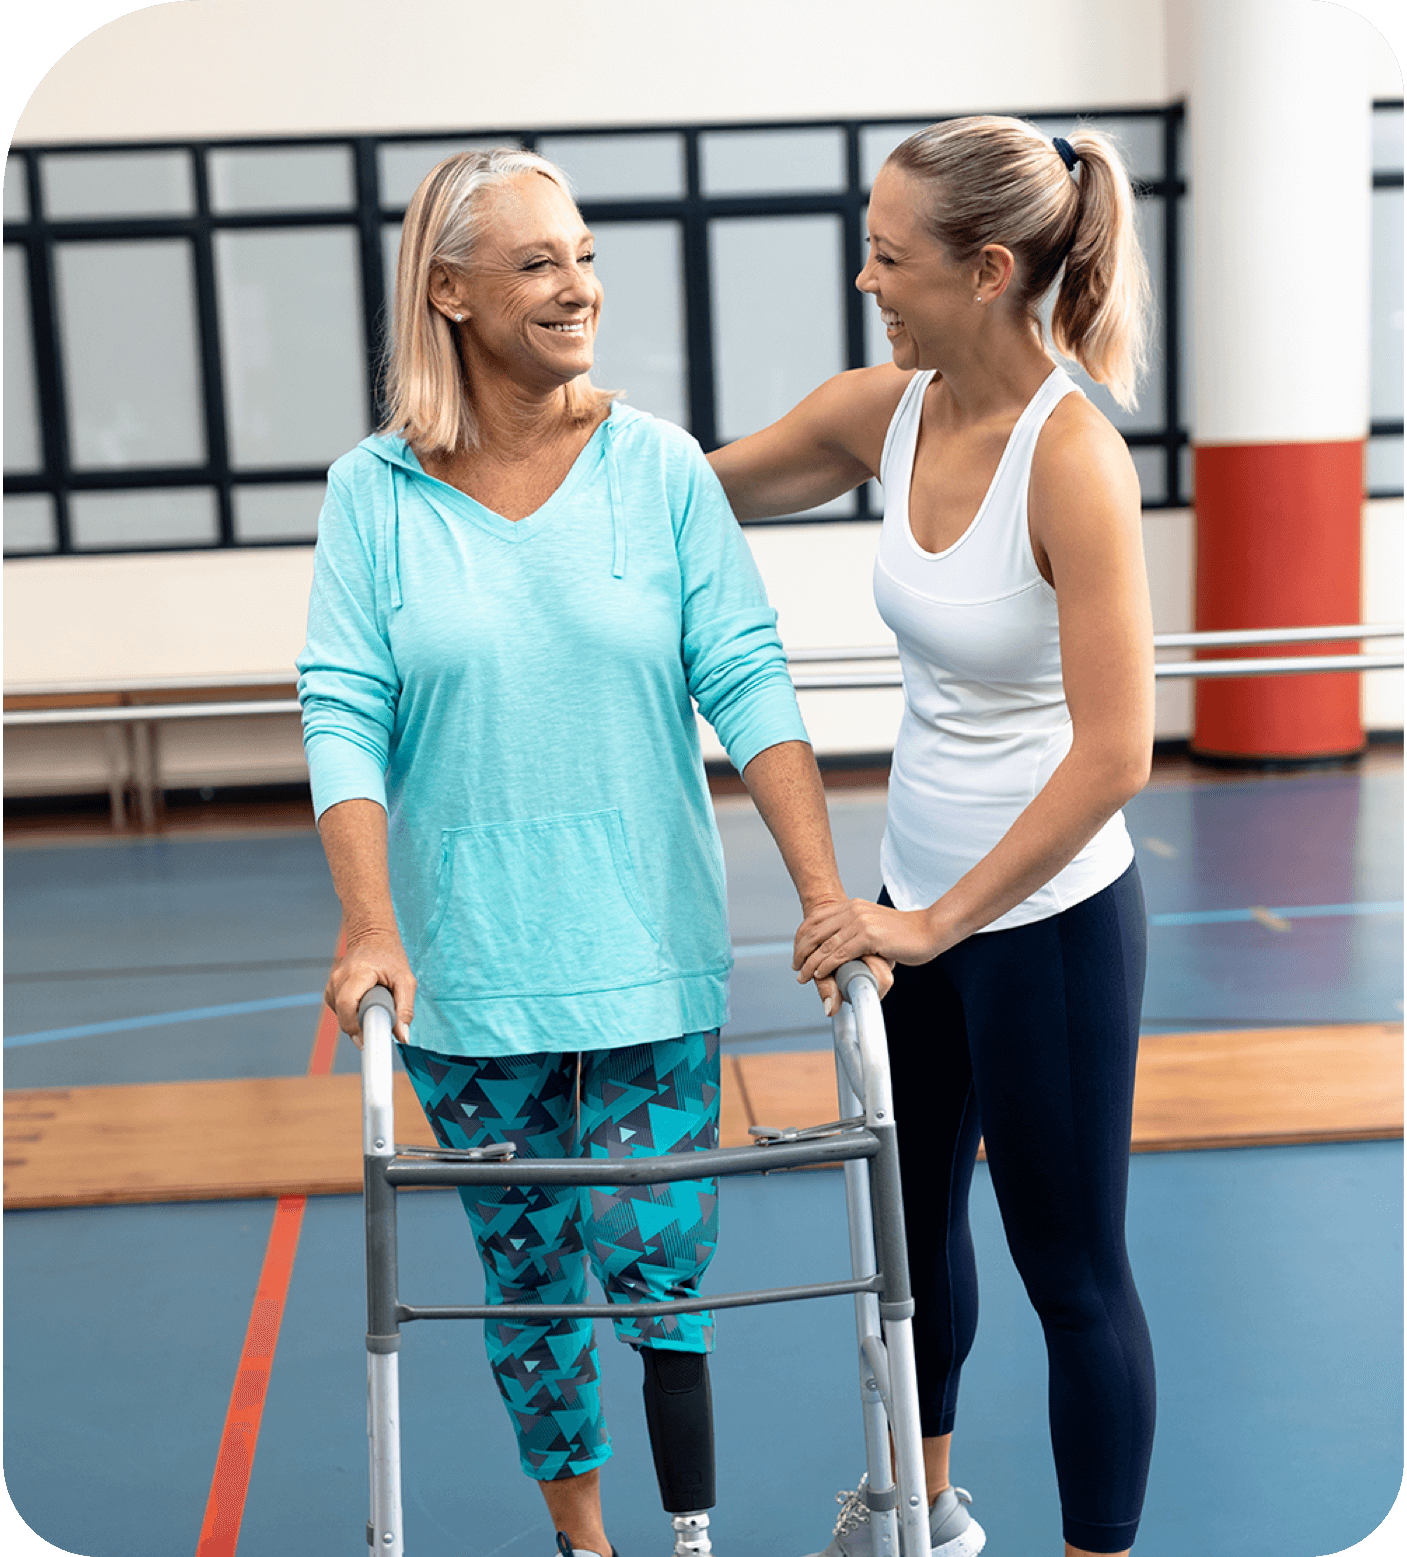 Woman helping patient use mobility equipment